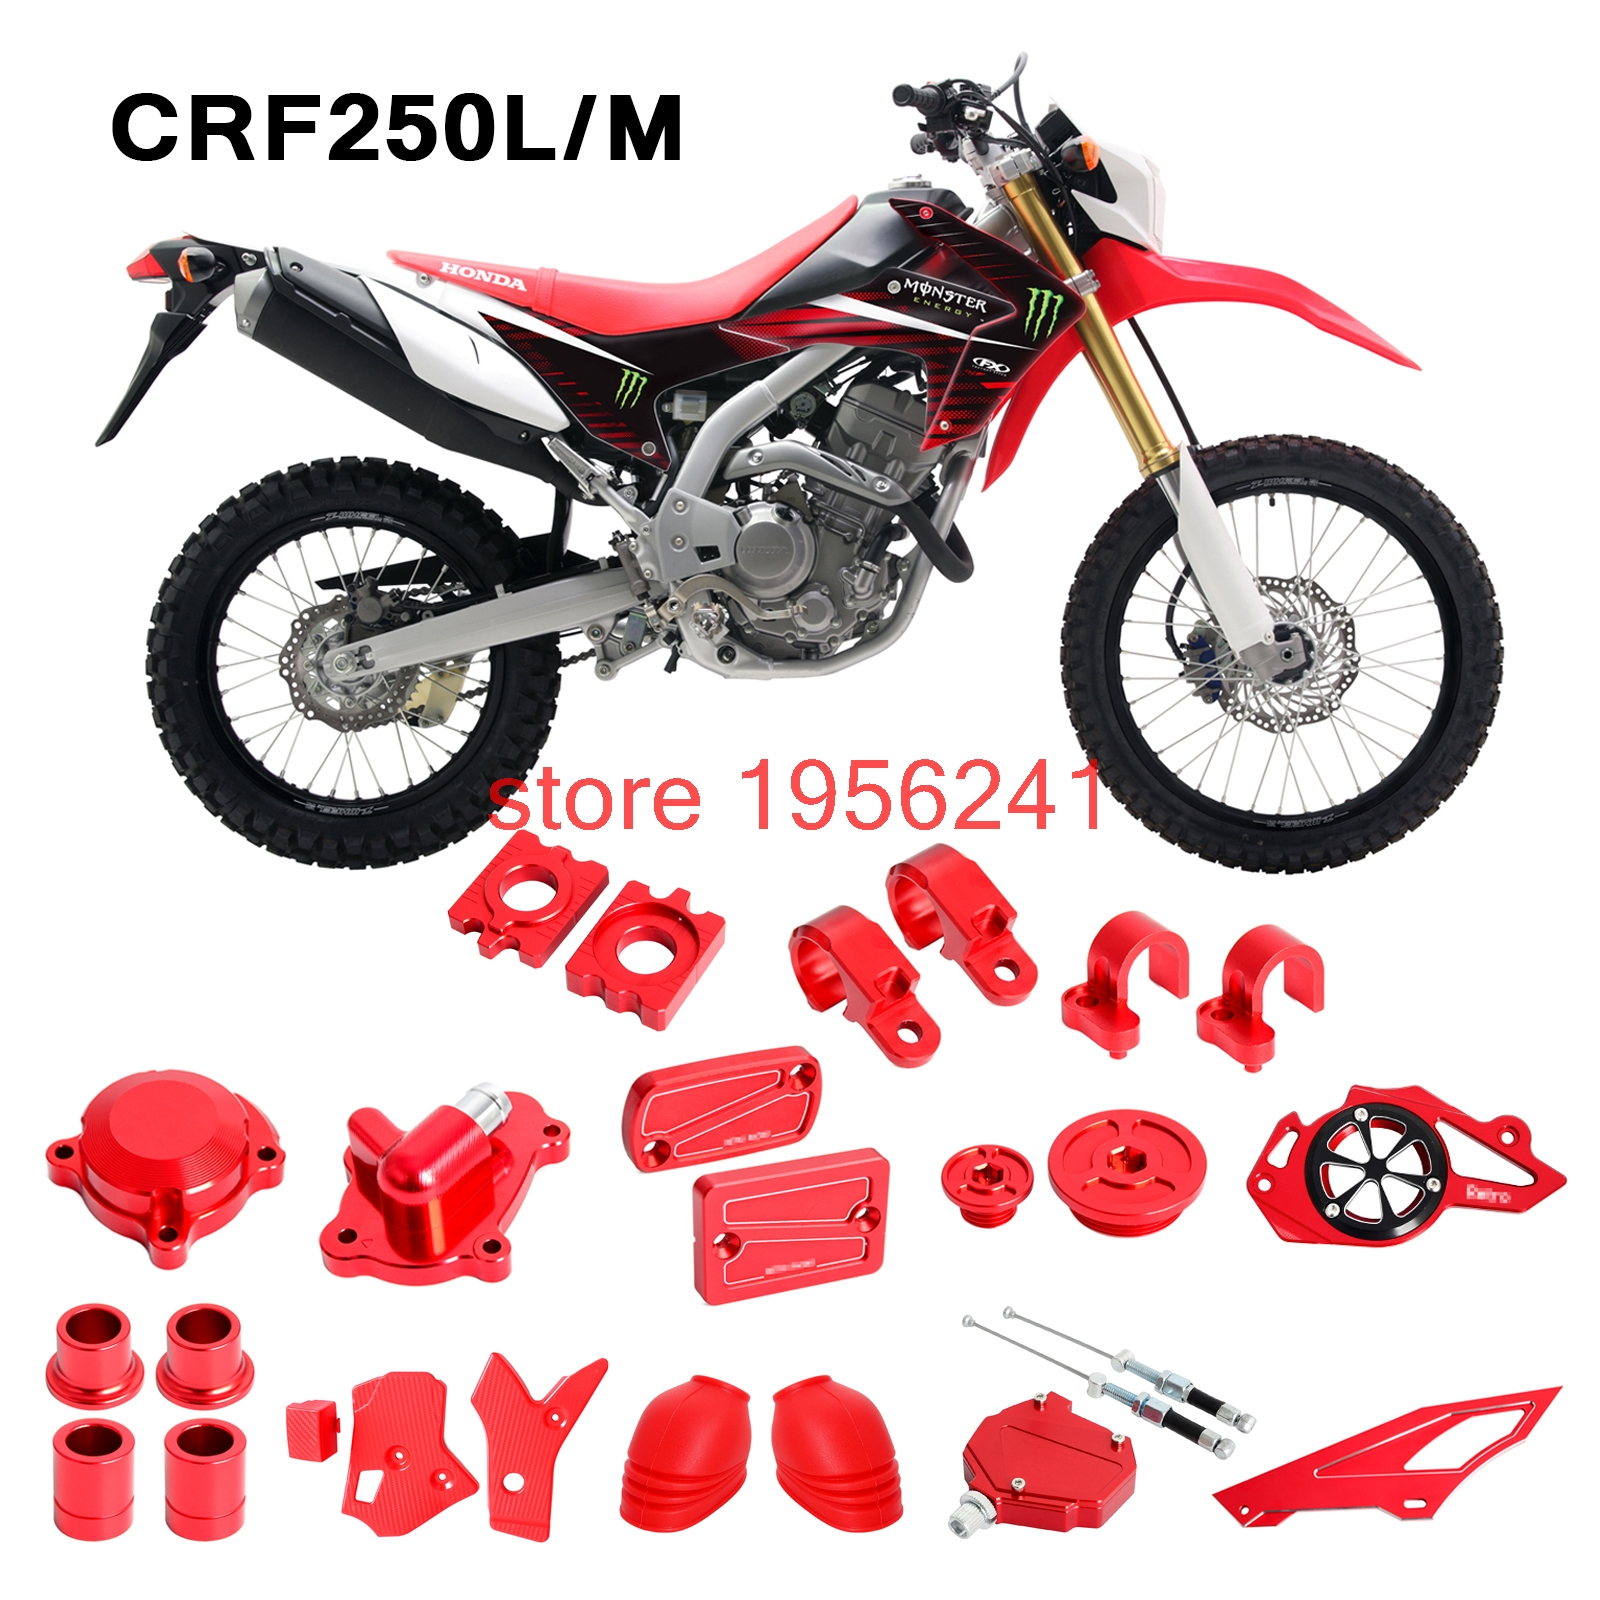 Modification Parts Rear Axle Block & Brake Reservoir Cover & Protect Cover & Other Bling Kit for Honda CRF250L CRF250M 2012-2015 браслет other 2015 y2228